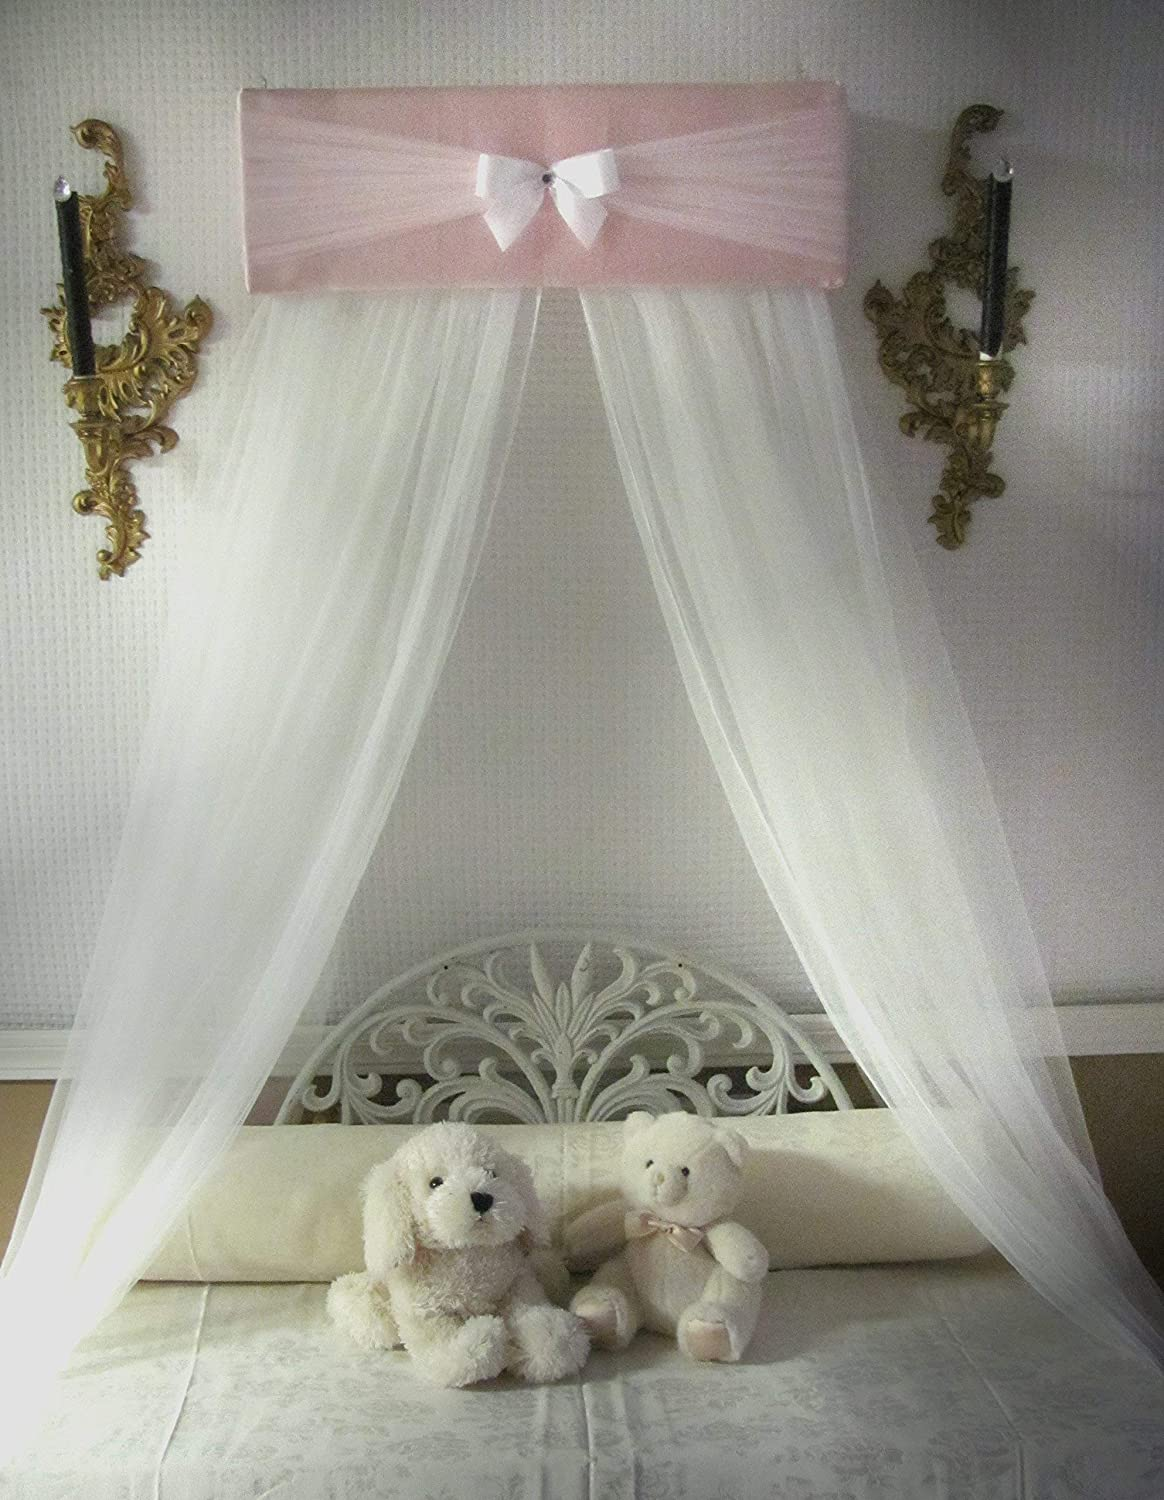 Amazoncom Bedroom Girls Bed Crib Canopy Rose Pink Ivory Tulle